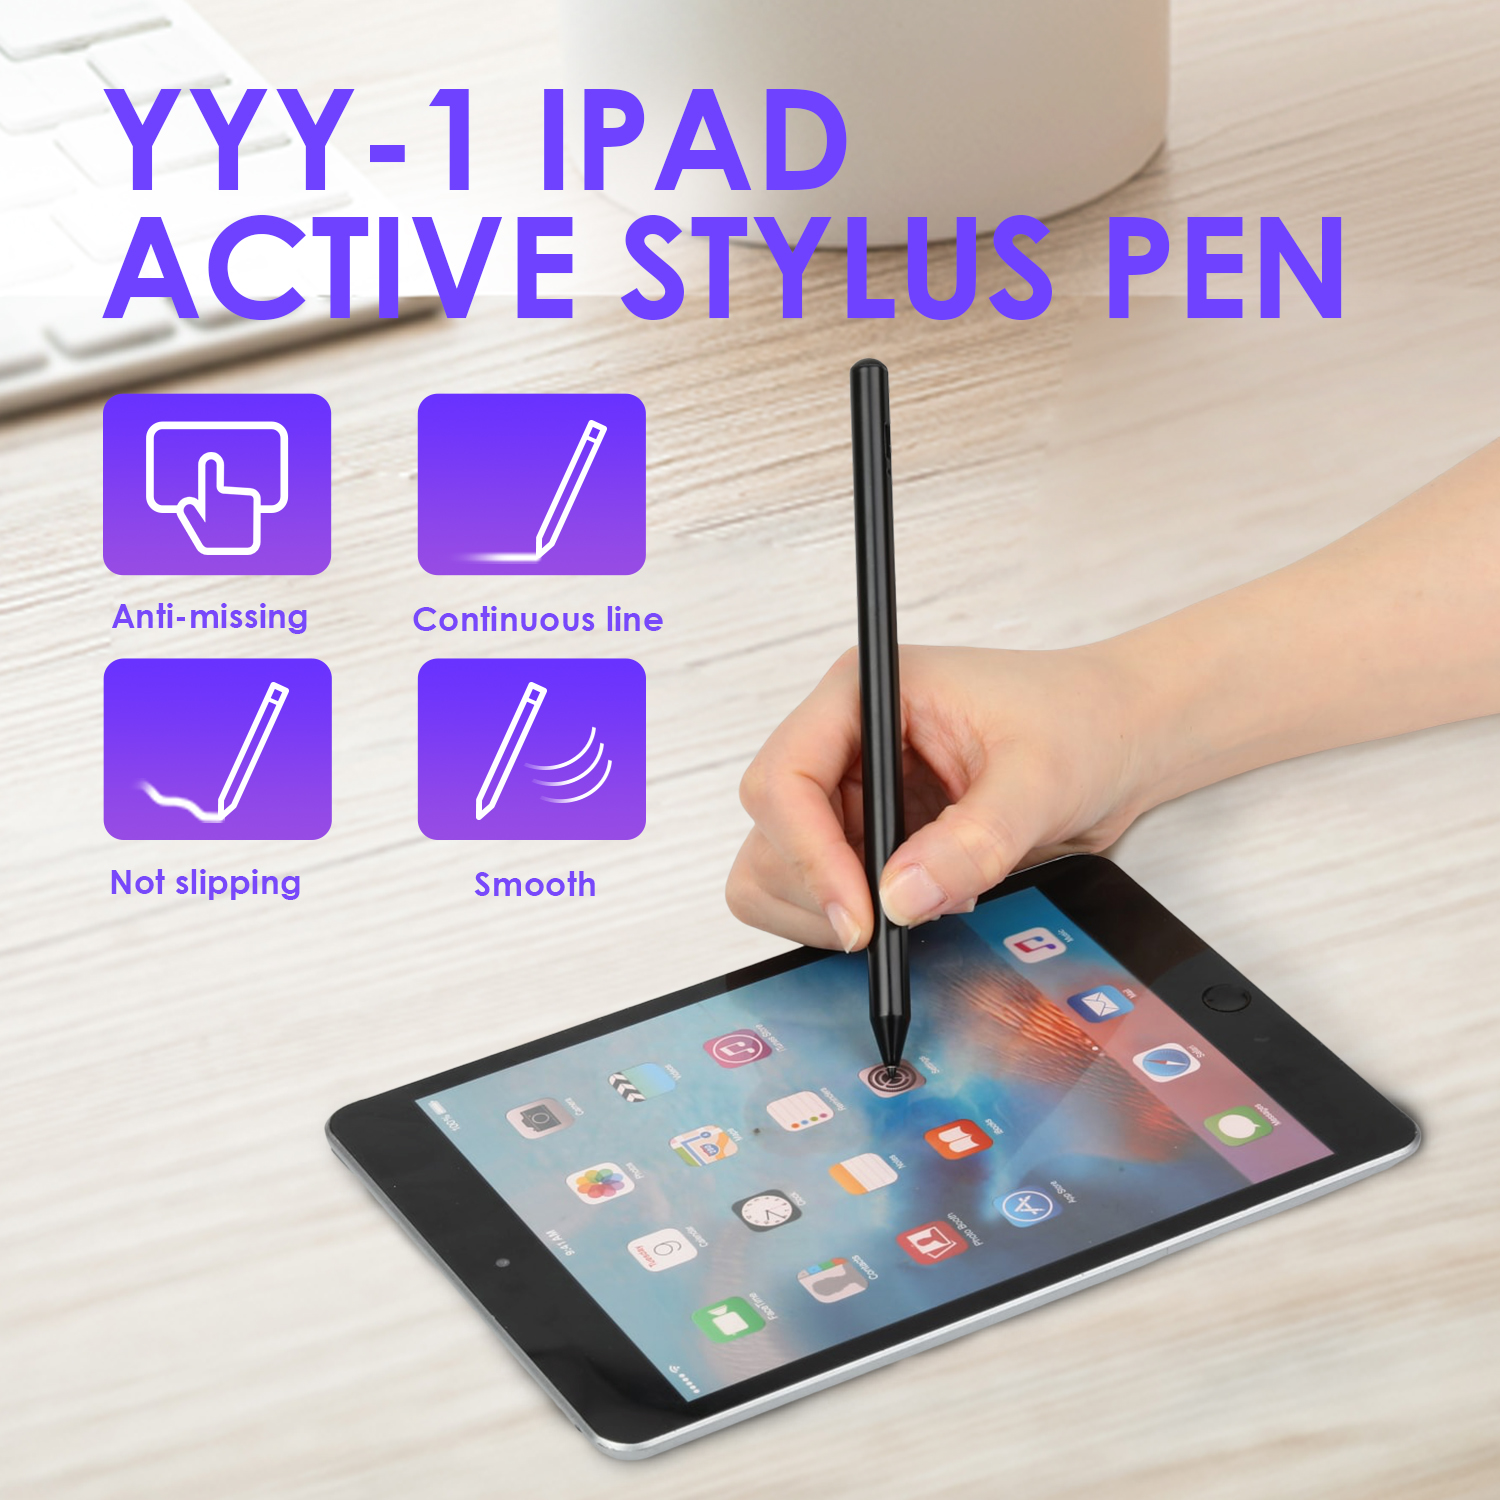 2020 Newest Active Stylus Touch Pen For Apple IPad Pro Air2 Mini 2018 No Bluetooth Smart Touch Pencil For IPad Capacitive Screen